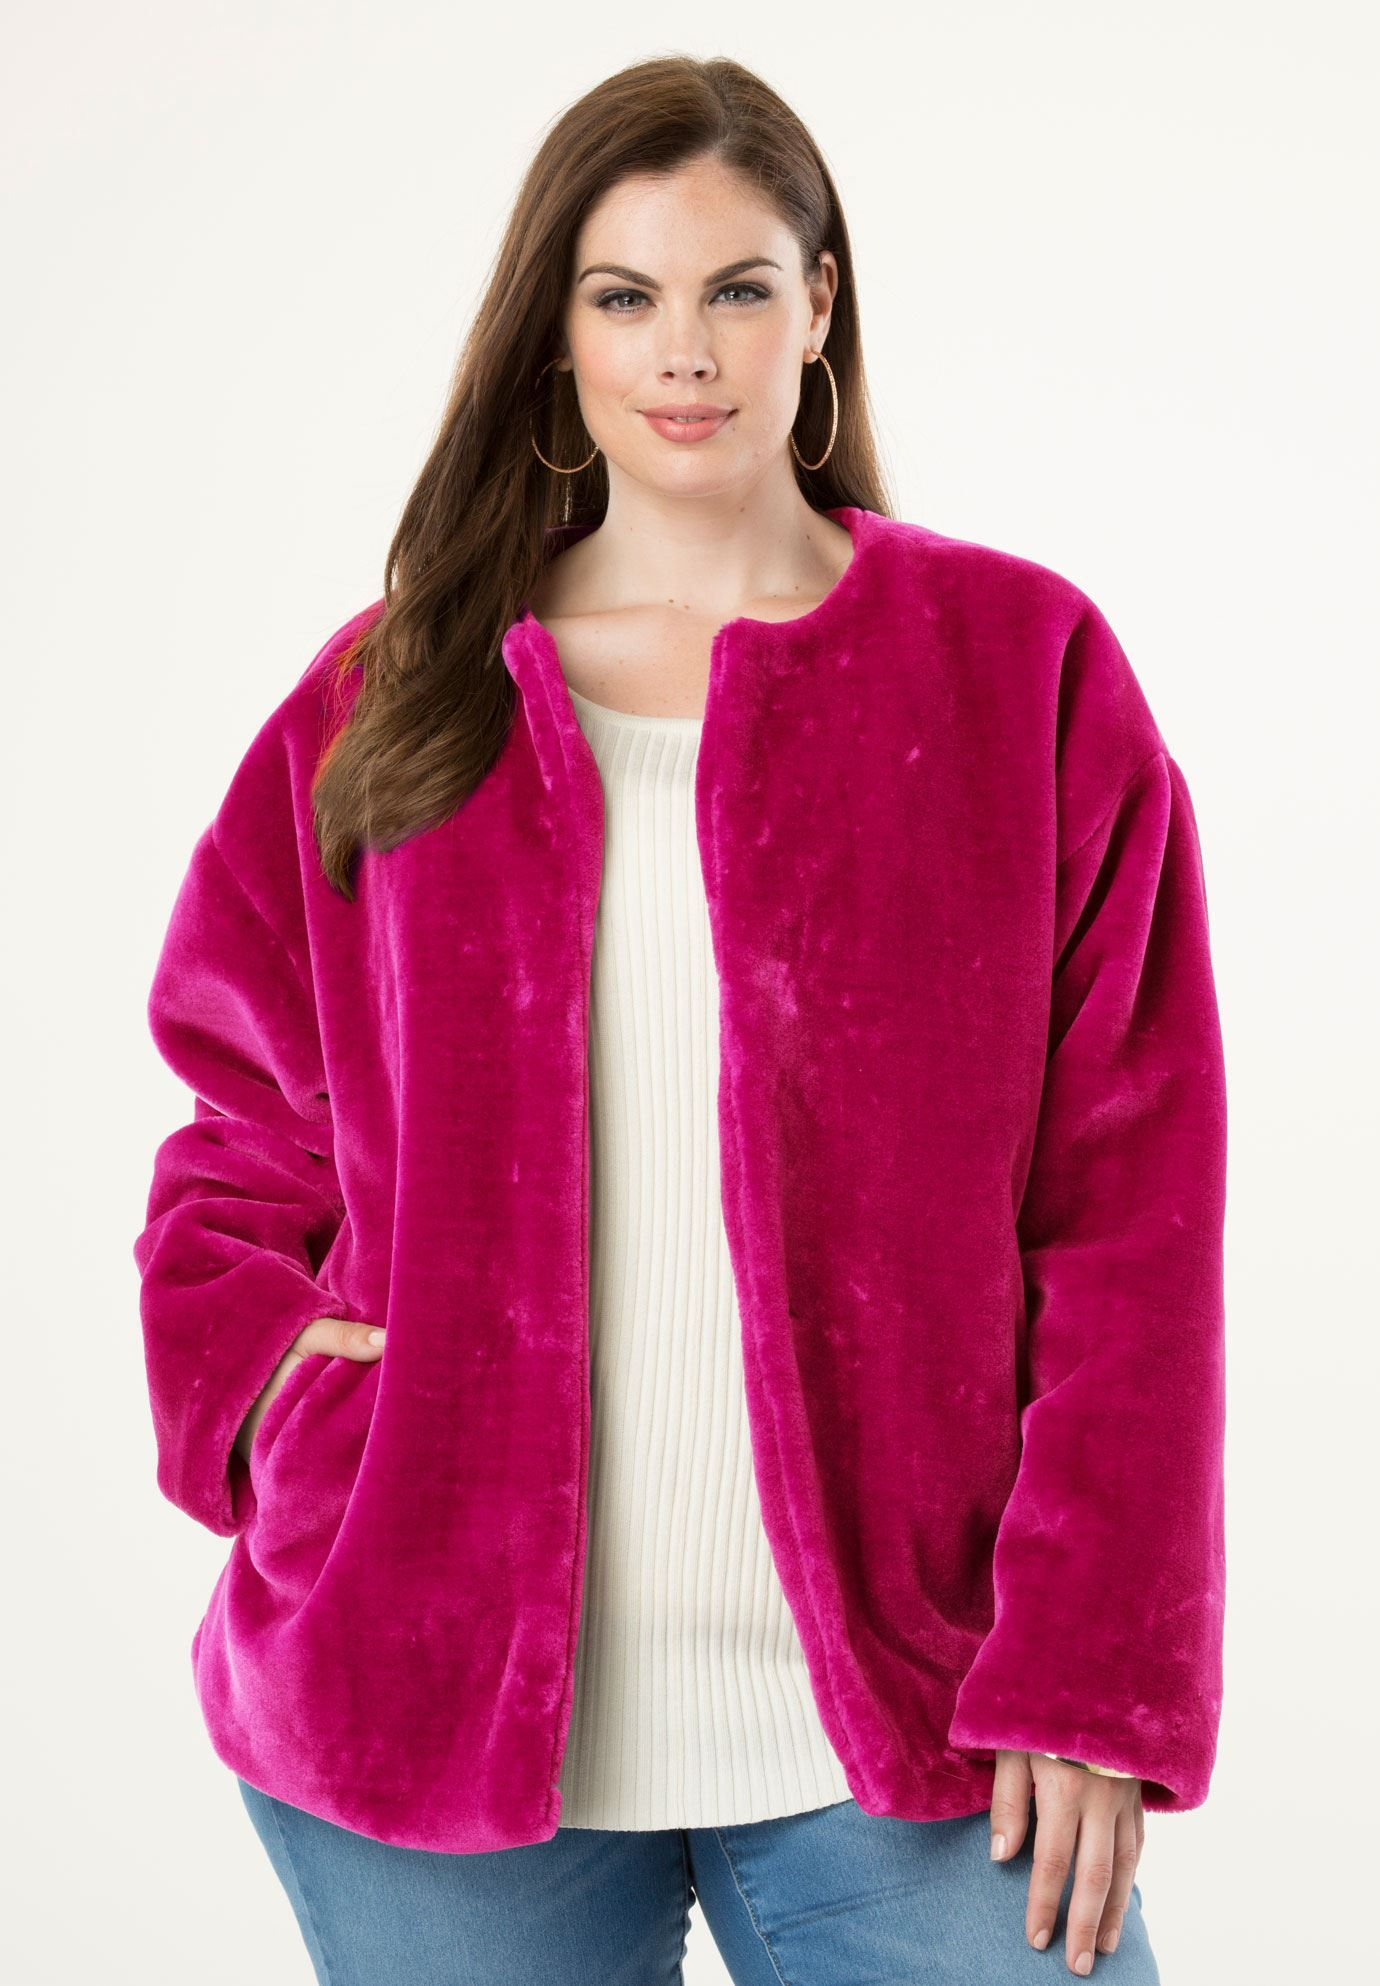 FauxFur Jacket, CRYSTAL BERRY (With images) Fringe